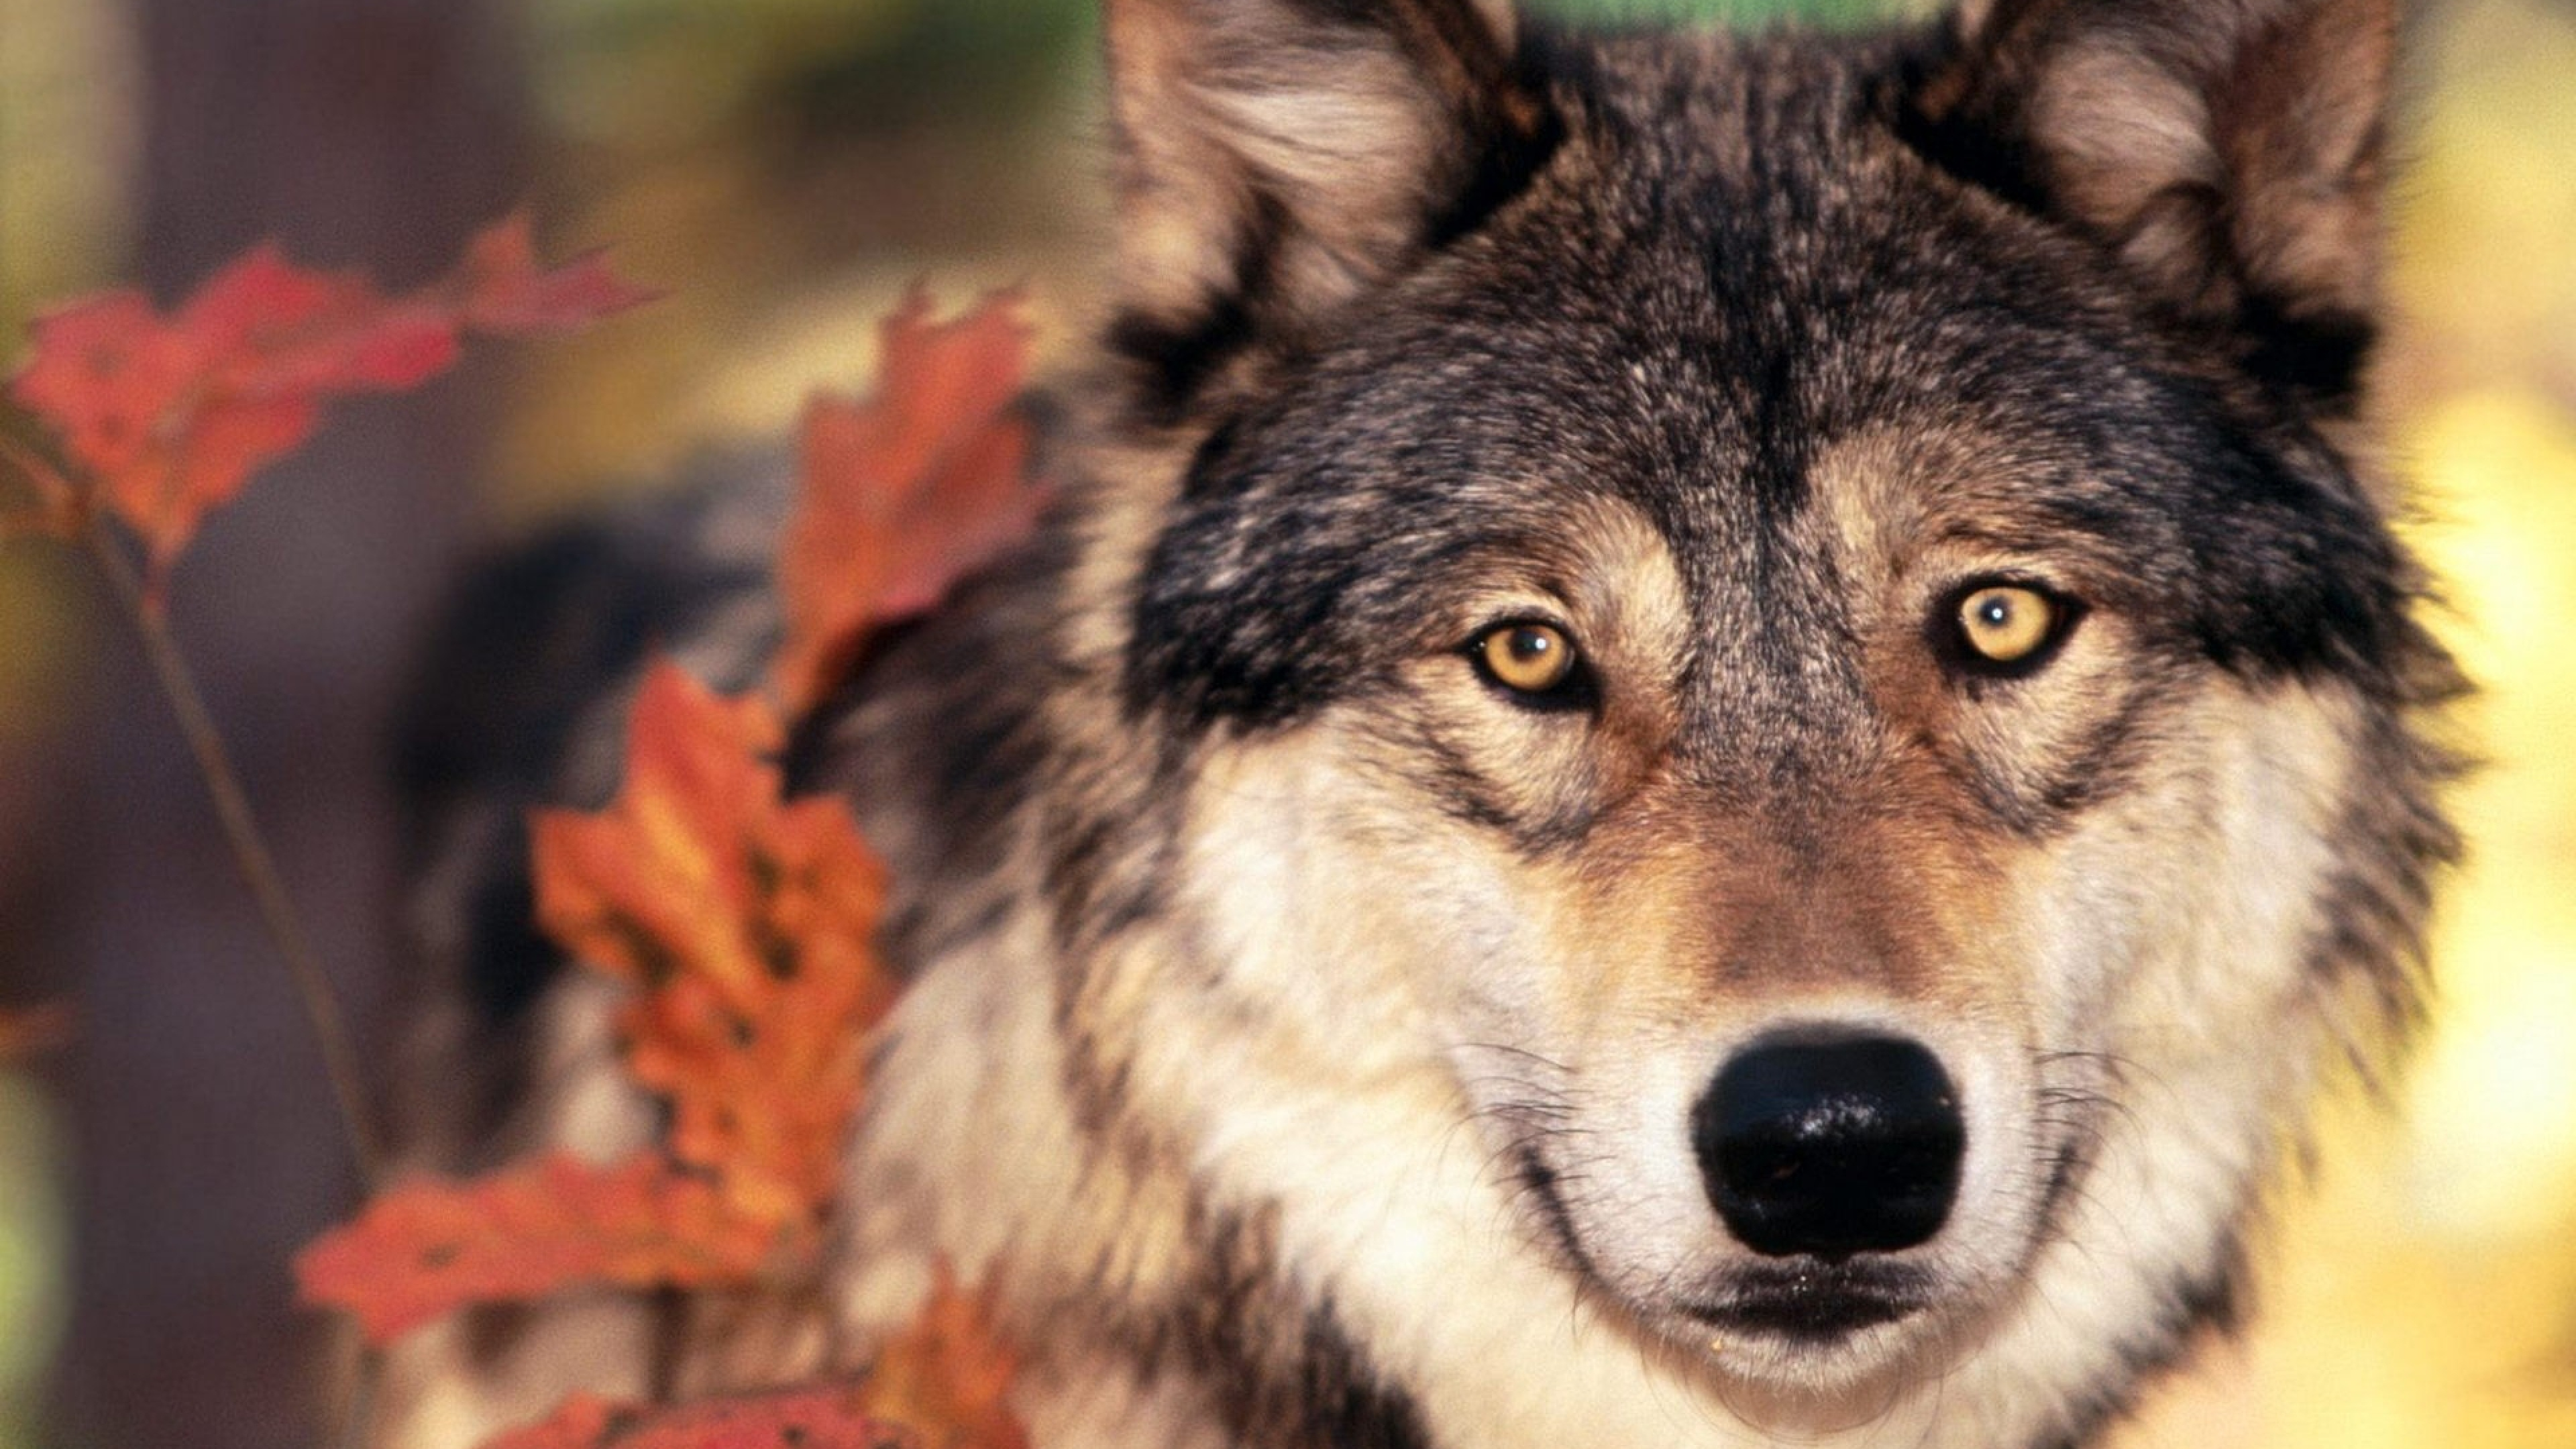 Download Wallpaper 3840x2160 Wolf Grass Leaves face Eyes 4K Ultra 3840x2160